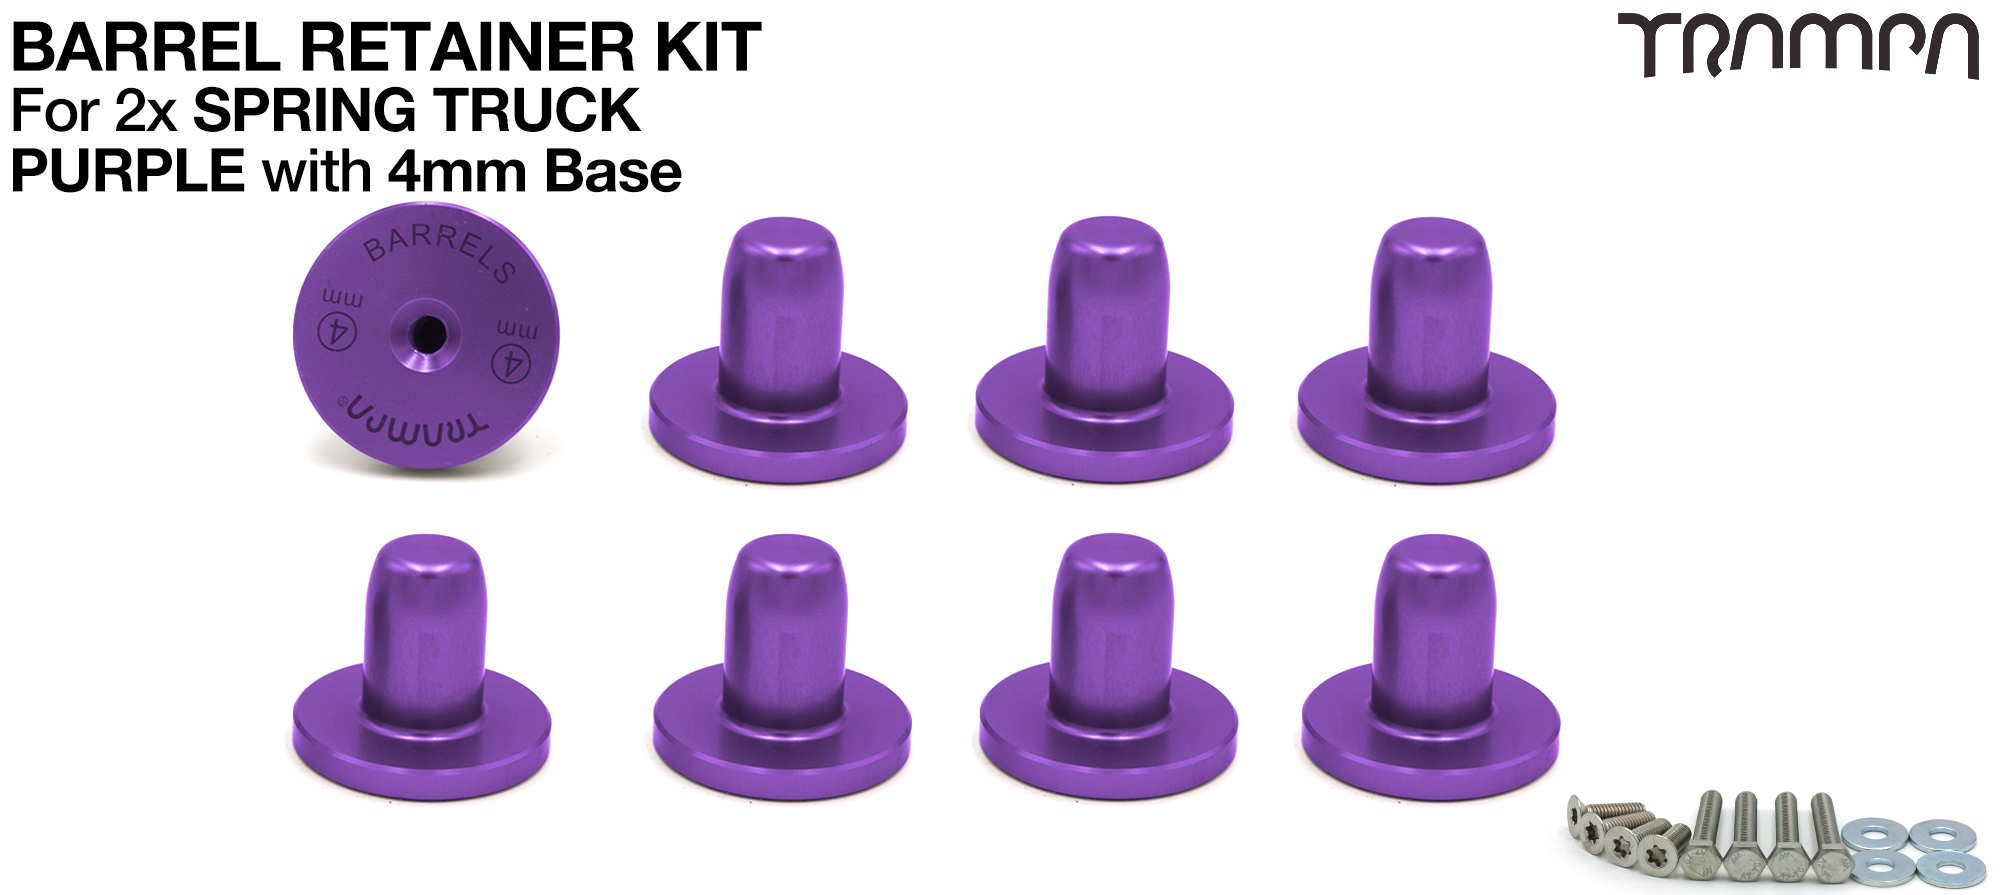 PURPLE Barrel Retainers x8 with 4mm Base